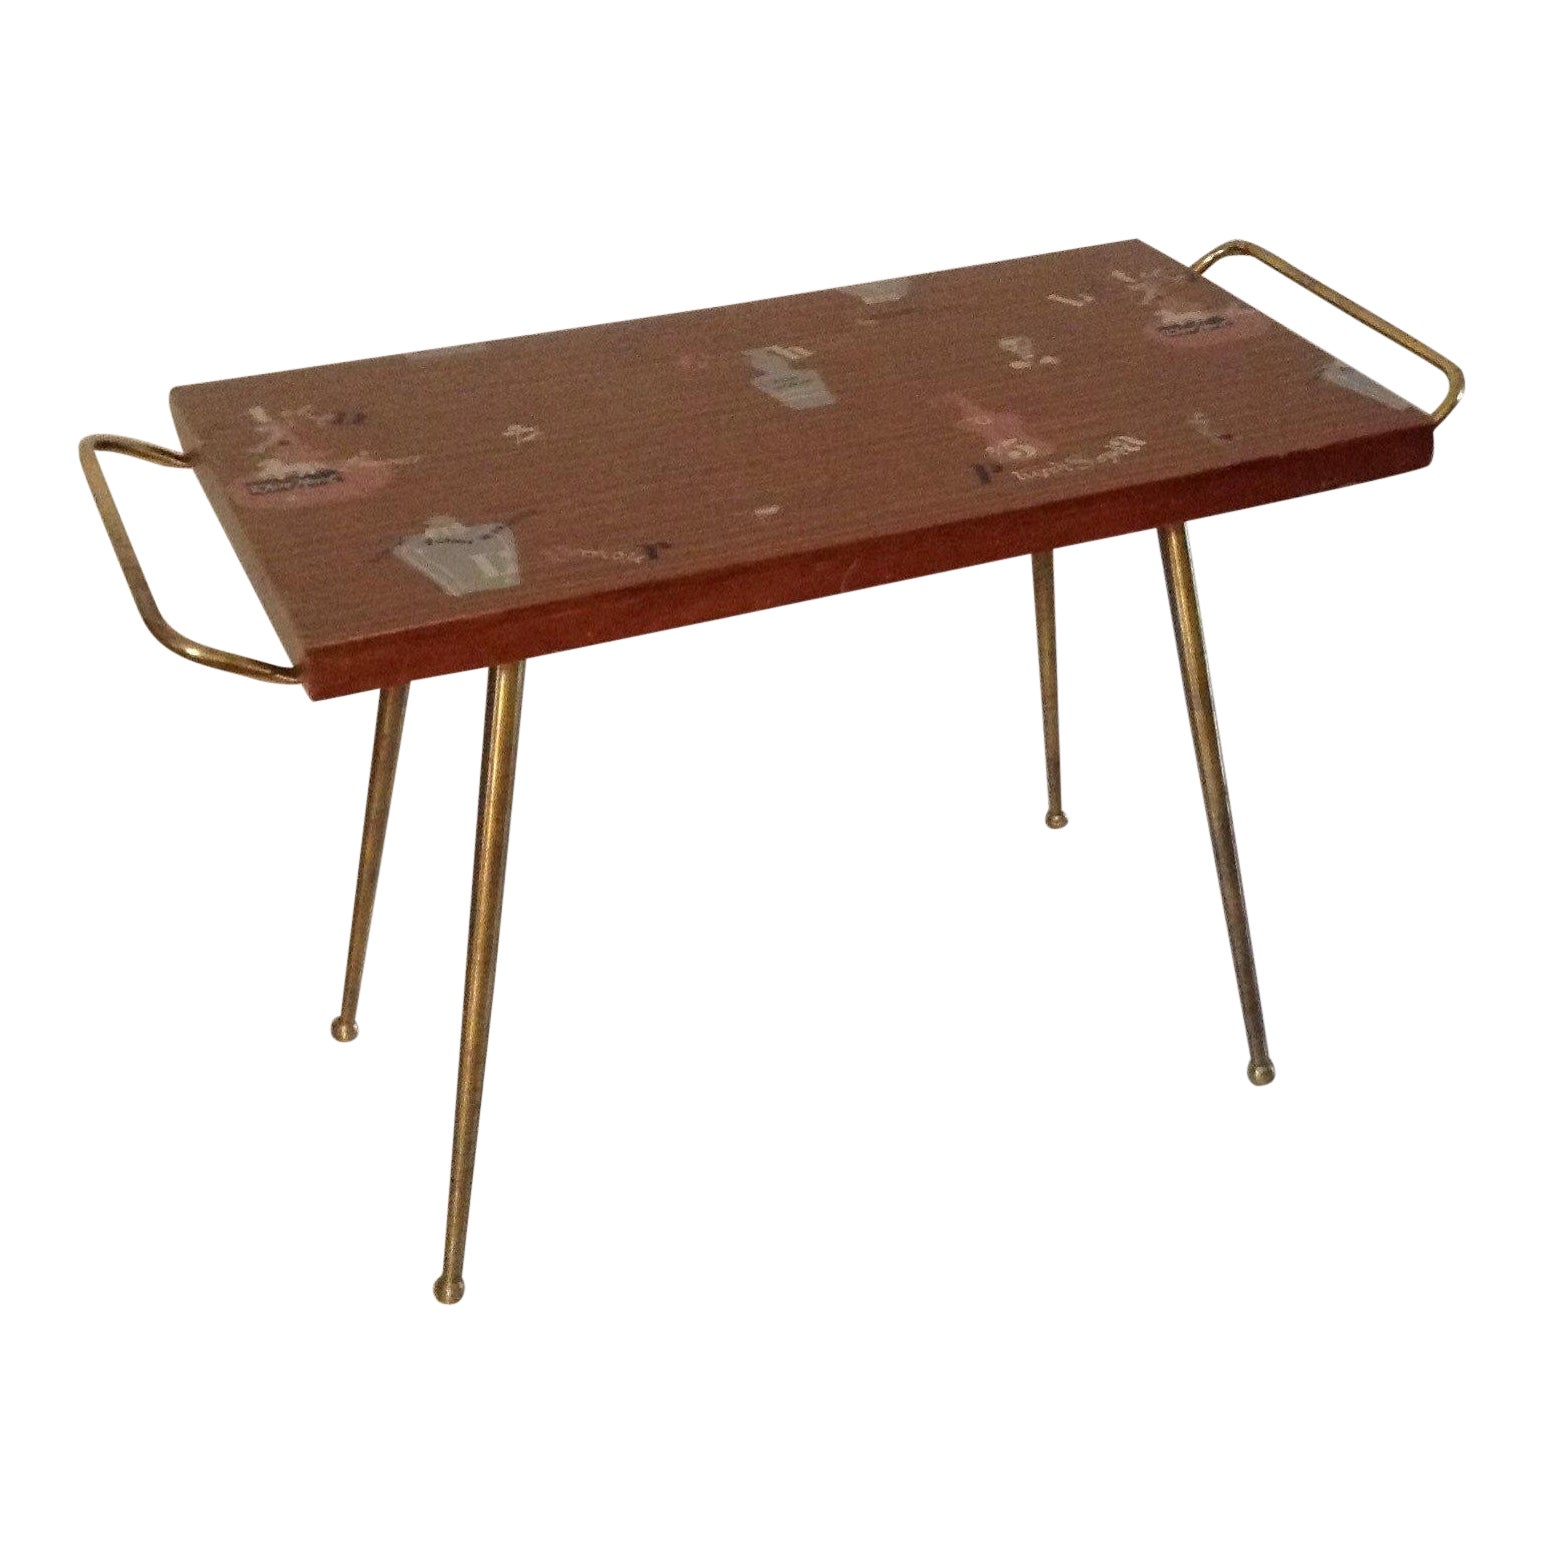 Oxidized Copper Bar Table Sheeting Cocktail Tray 30H Patina Furniture Side